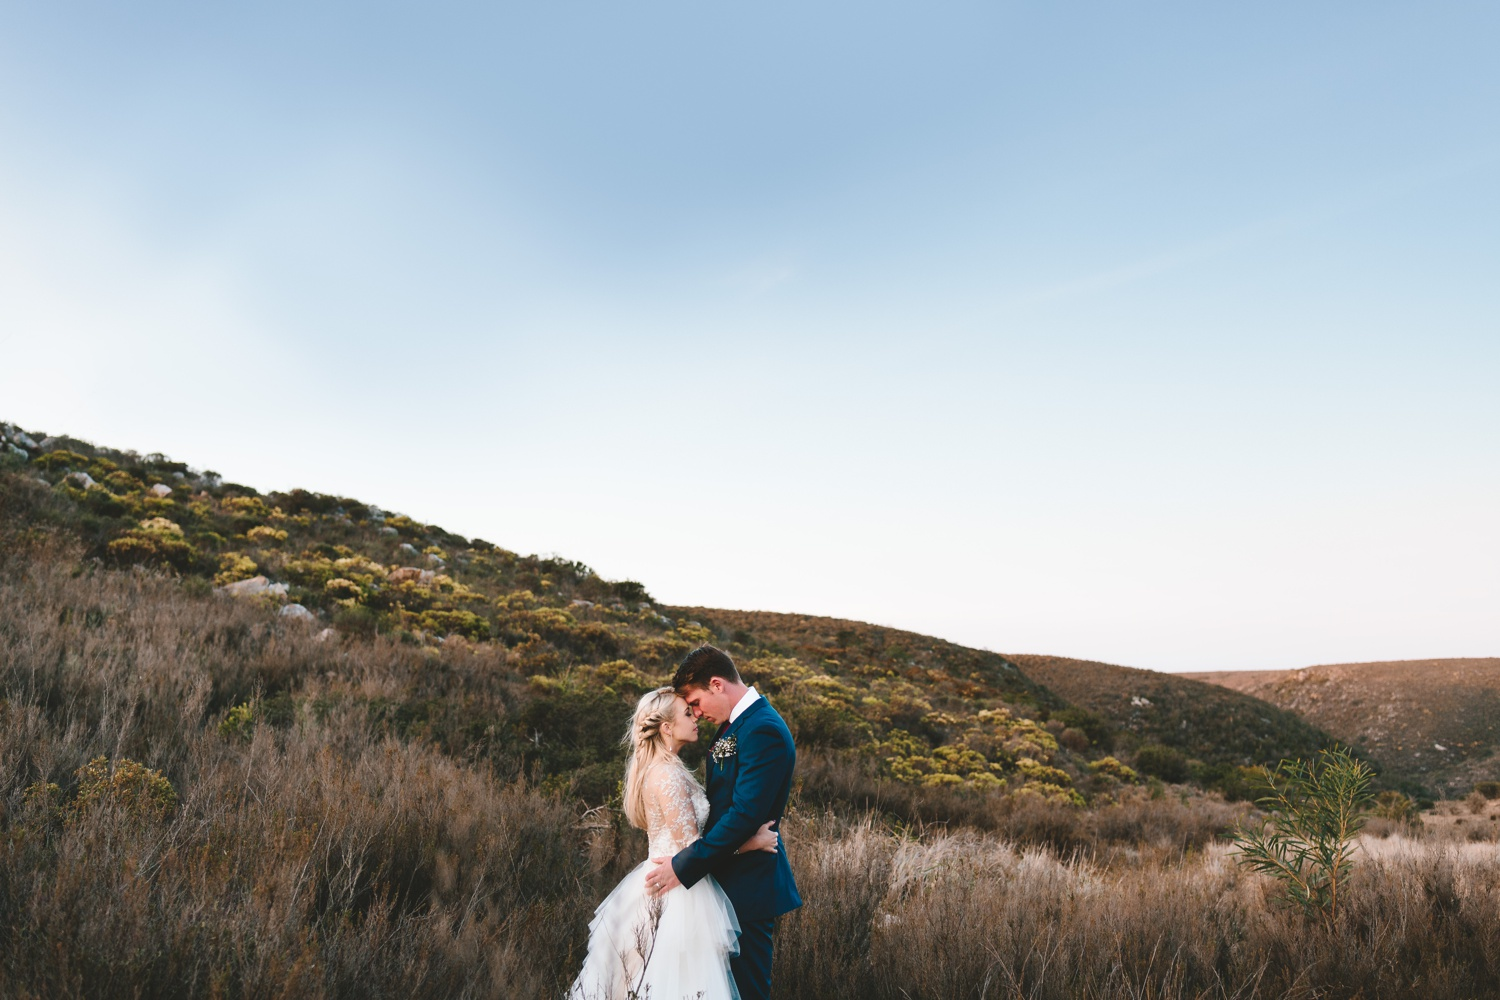 cathryn_warwick_wearecharlieray_hopewell_conservation_eastern_cape_wedding_0112.jpg